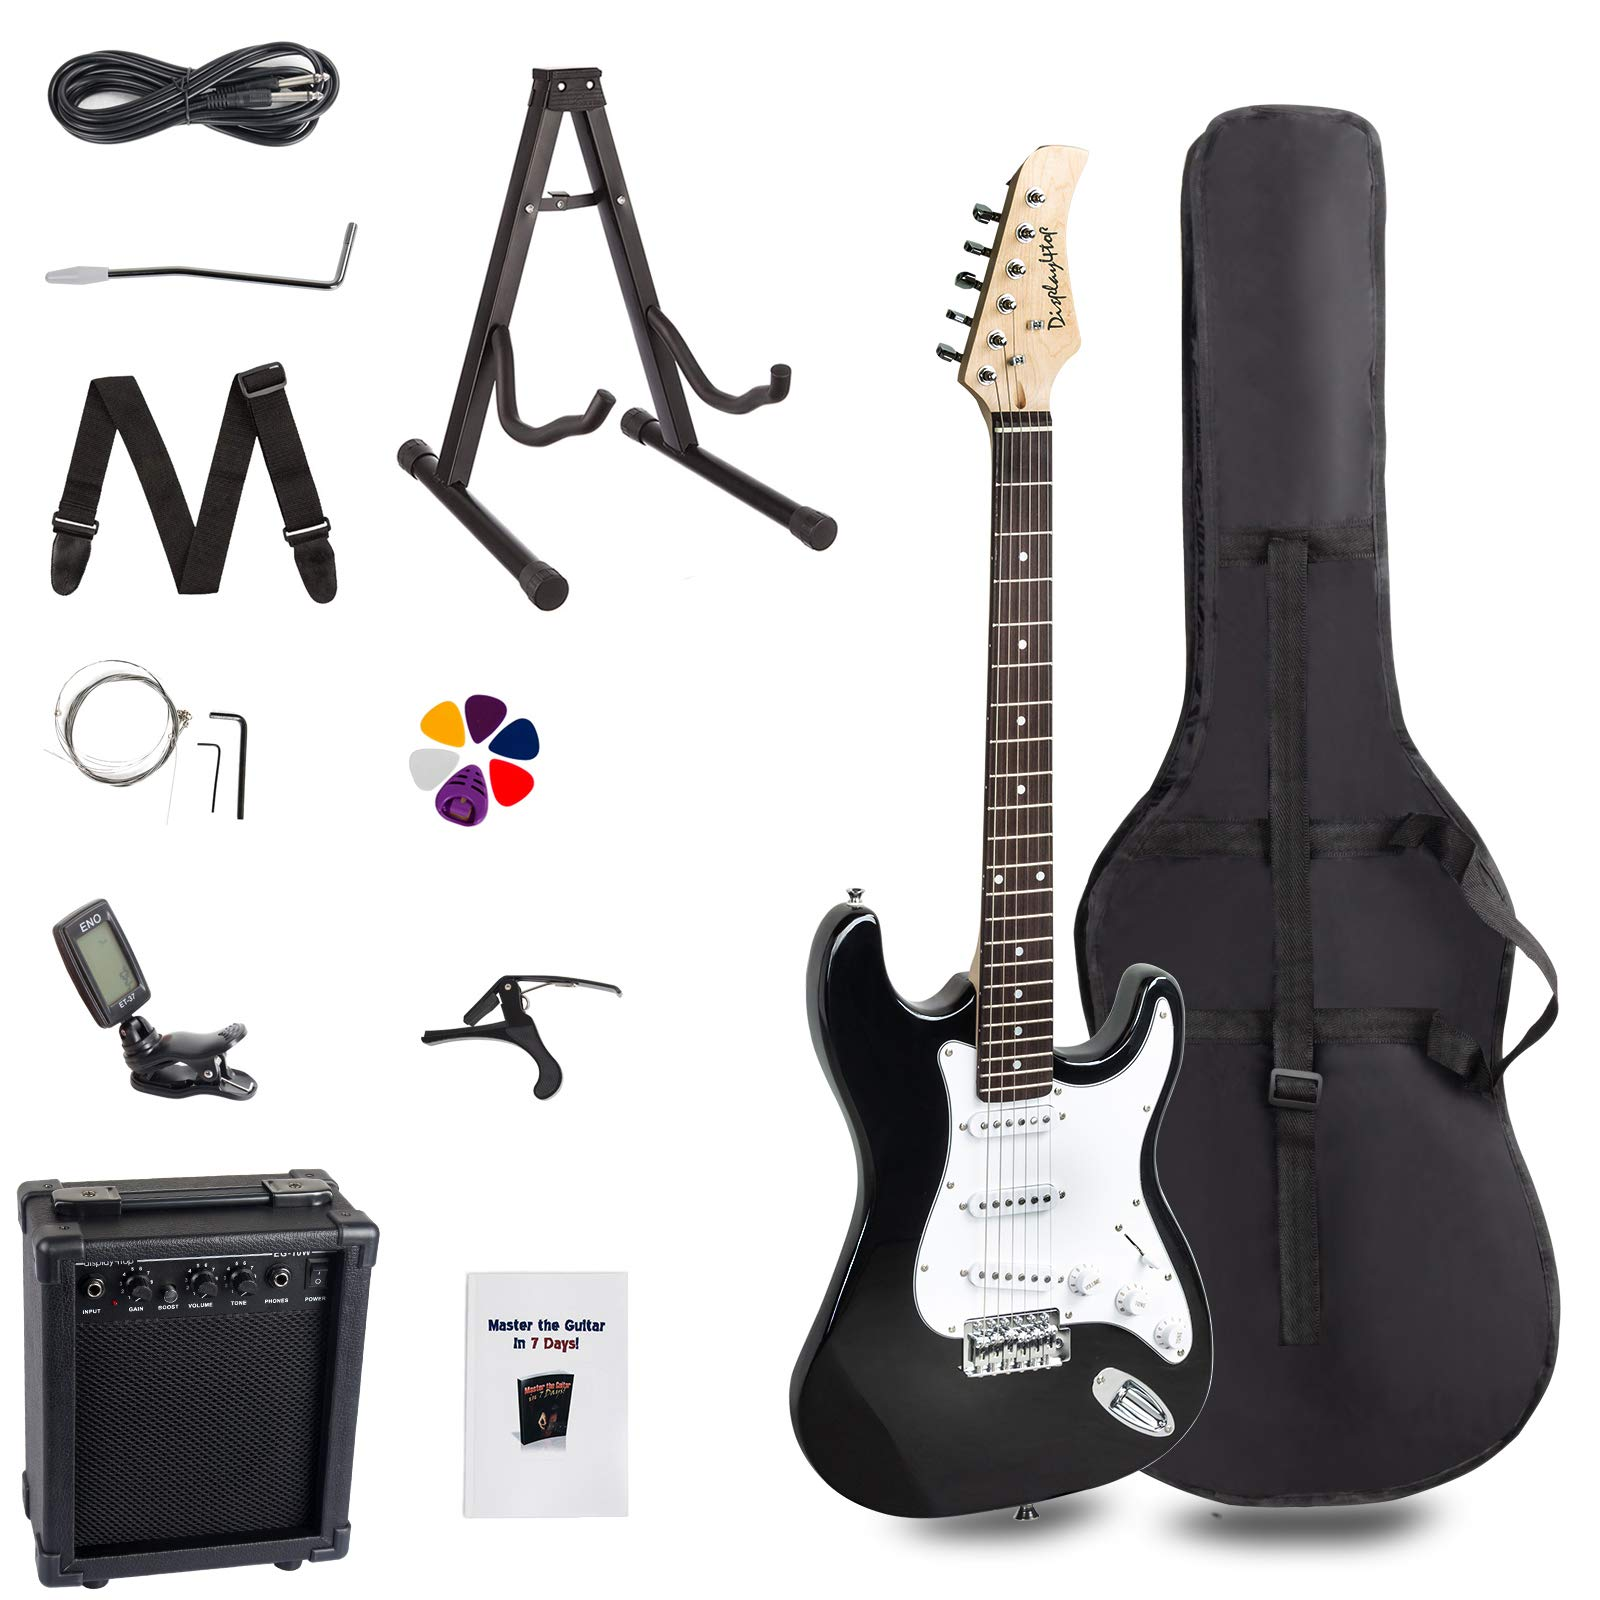 Display4top 39in Full-Size Electric Guitar Most complete Beginner Super Kit Package with 10-Watt Amp,Guitar Stand, Bag, Guitar Pick, Strap,spare Strings, Tuner, Case and Cable (Black/white) by Display4top